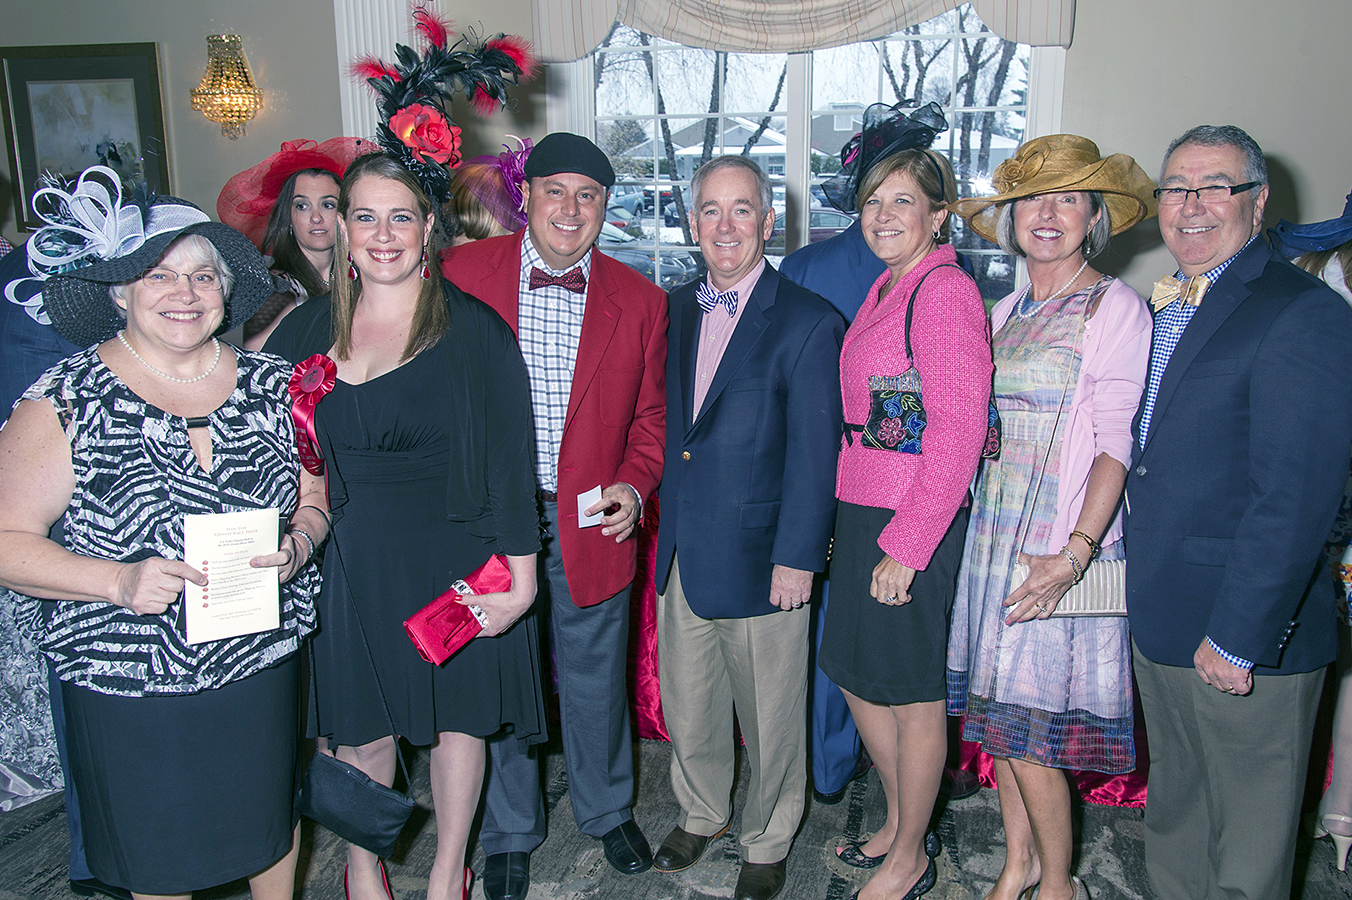 (From left) Donna Meehan, Clinical Nurse Educator, Riddle Hospital; Chrissy Myers, Nurse Manager, Riddle Hospital; Sean Joyce, guest; Jack Lynch, President and CEO, Main Line Health and wife Deb Lynch; Cindy Perecko and husband Gary Perecko, President, Riddle Hospital